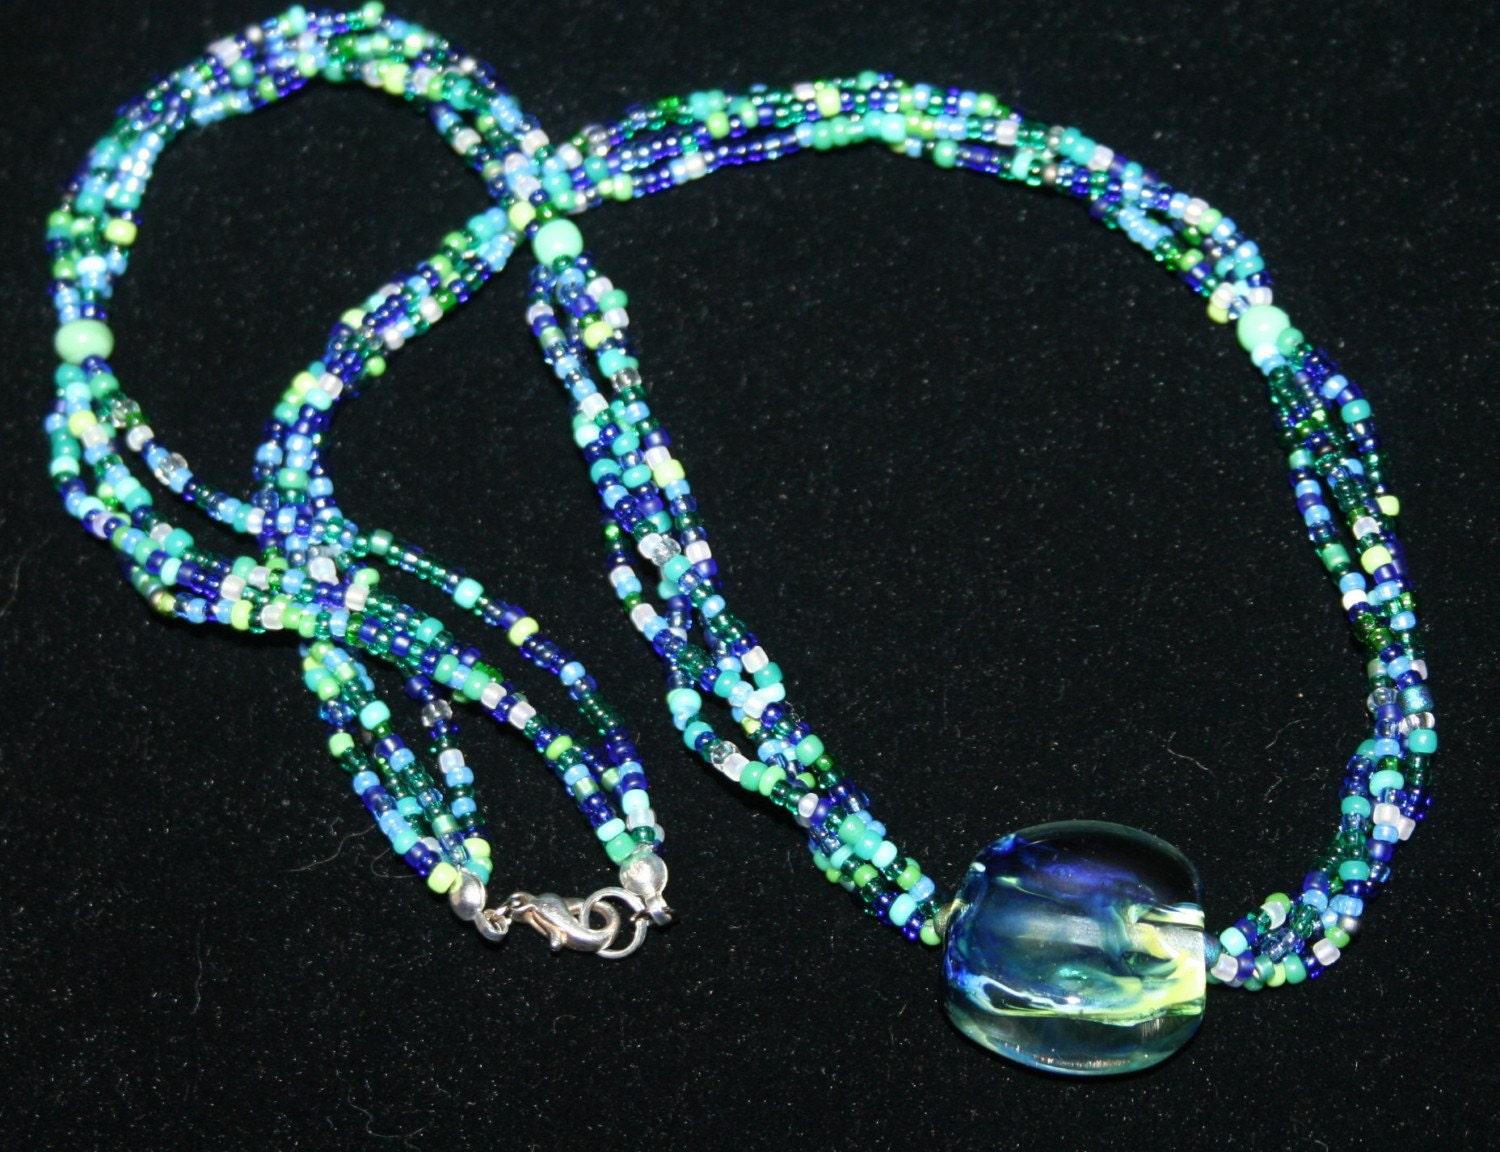 Coco Bleu Lampwork and Seed Bead Necklace